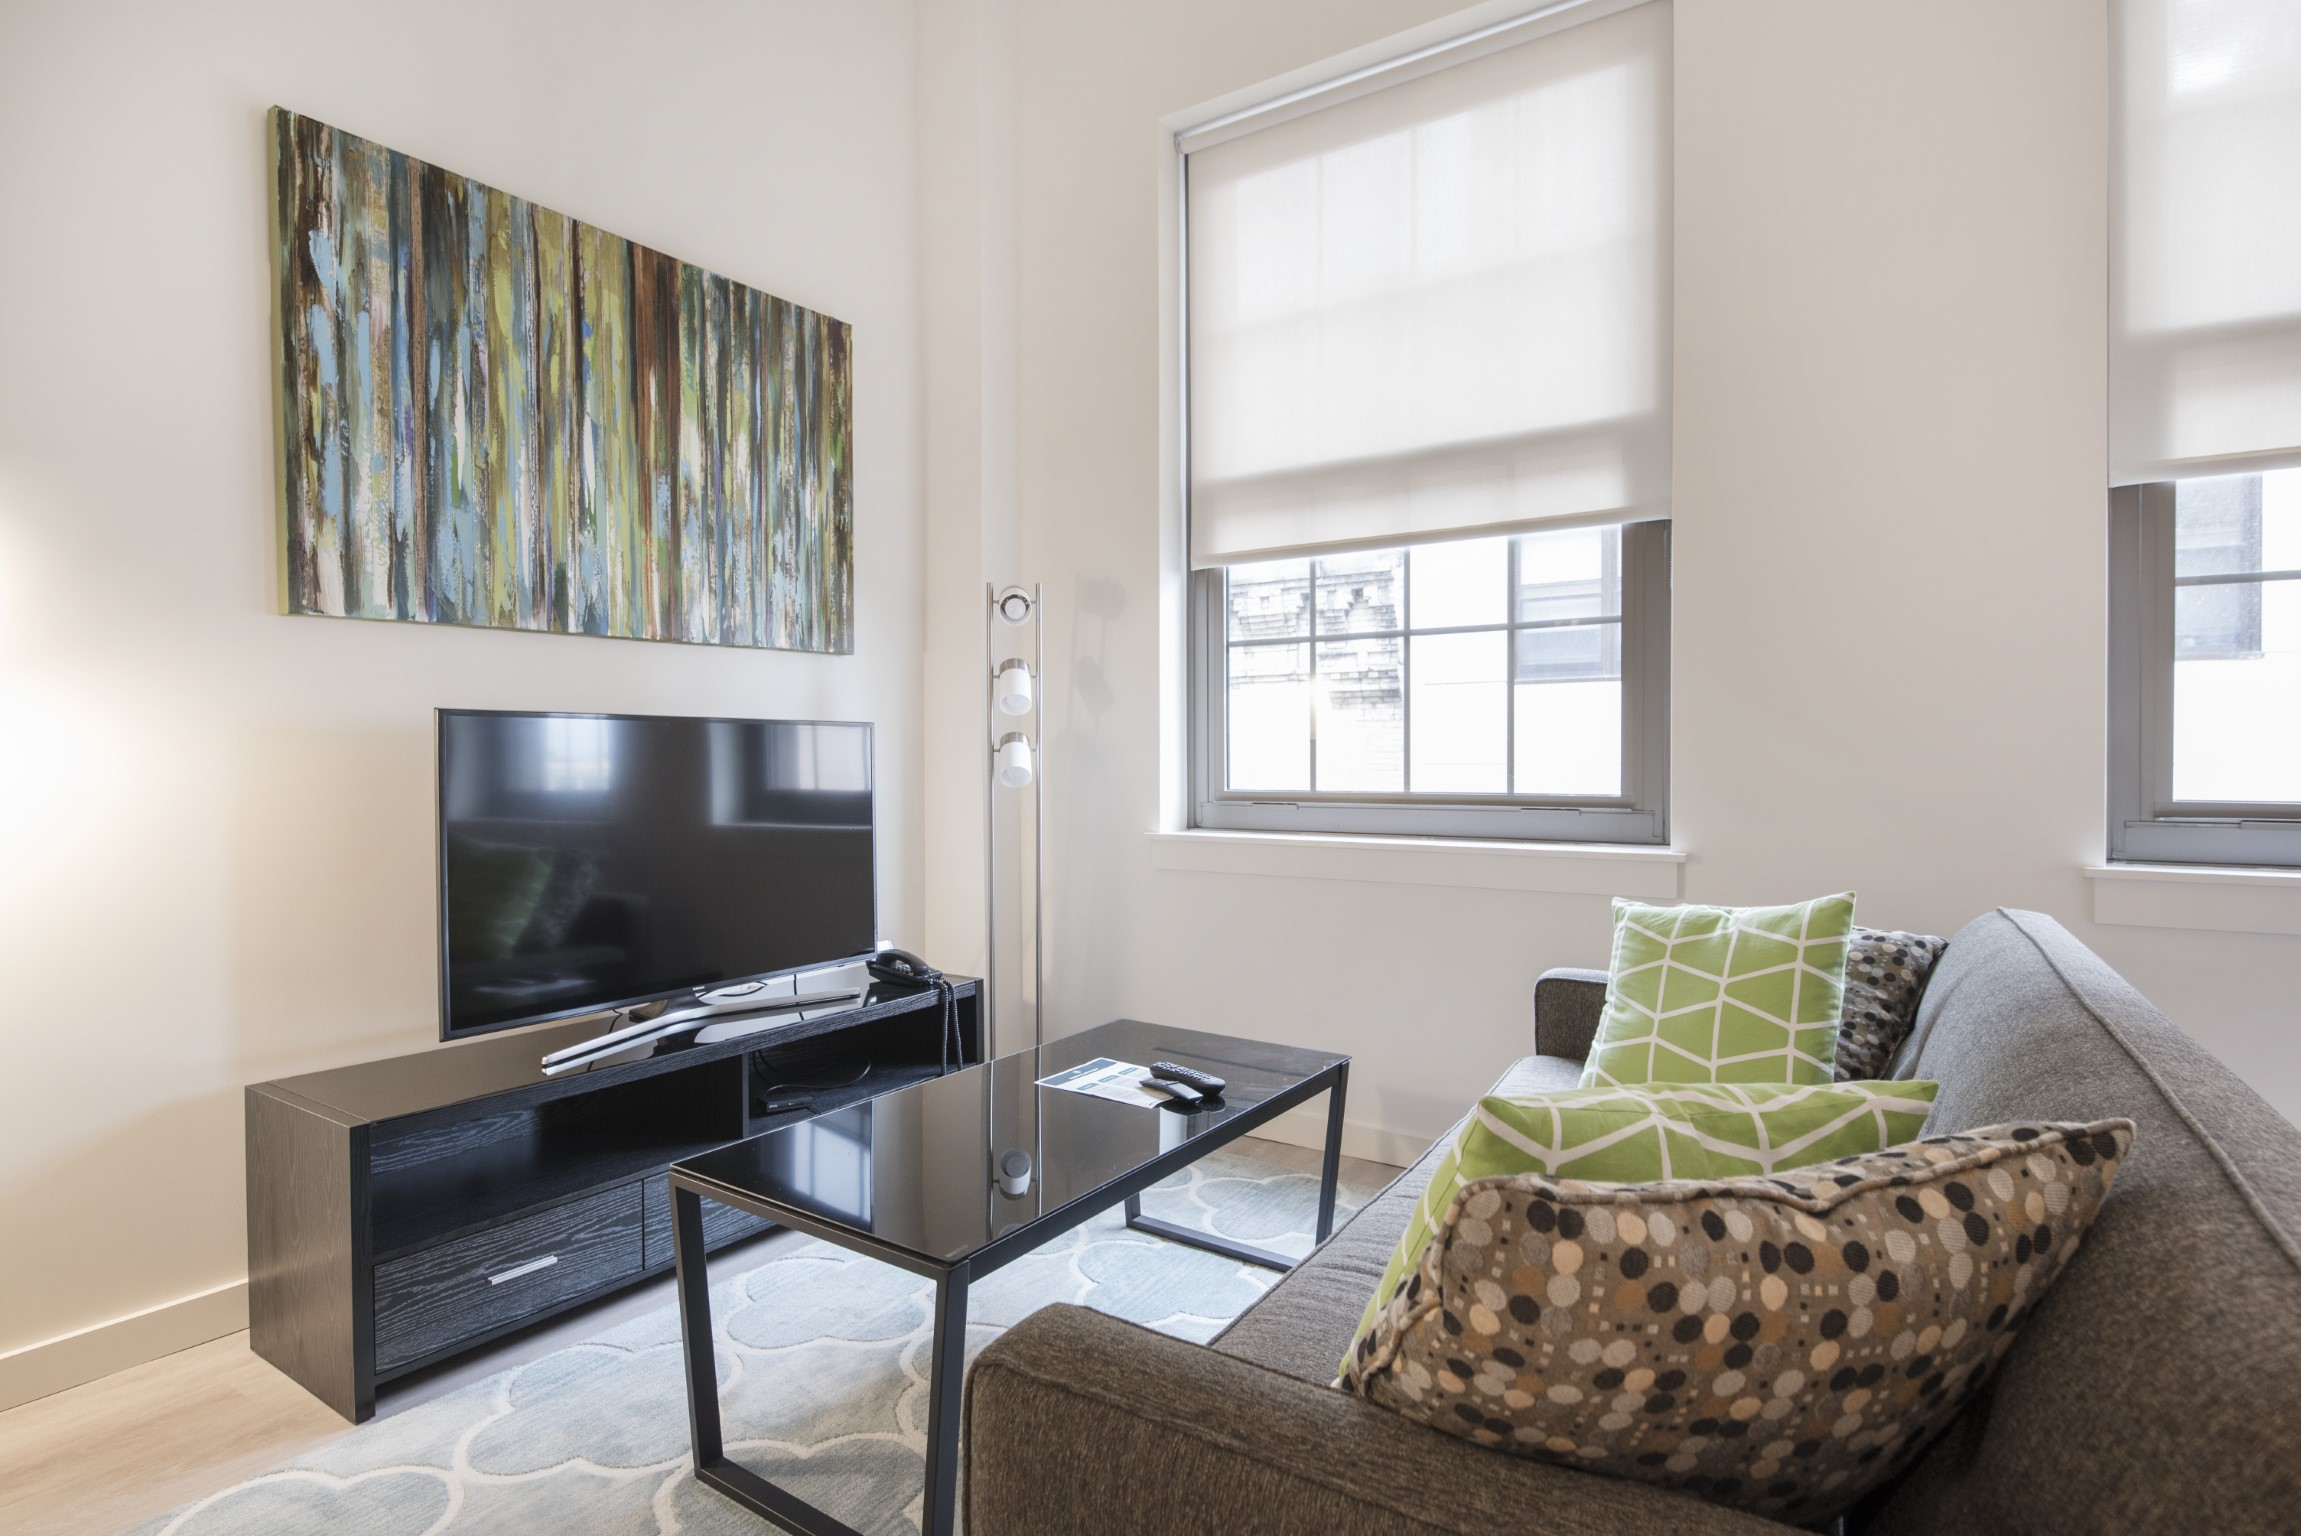 image 3 furnished 1 bedroom Apartment for rent in Chinatown, Boston Area